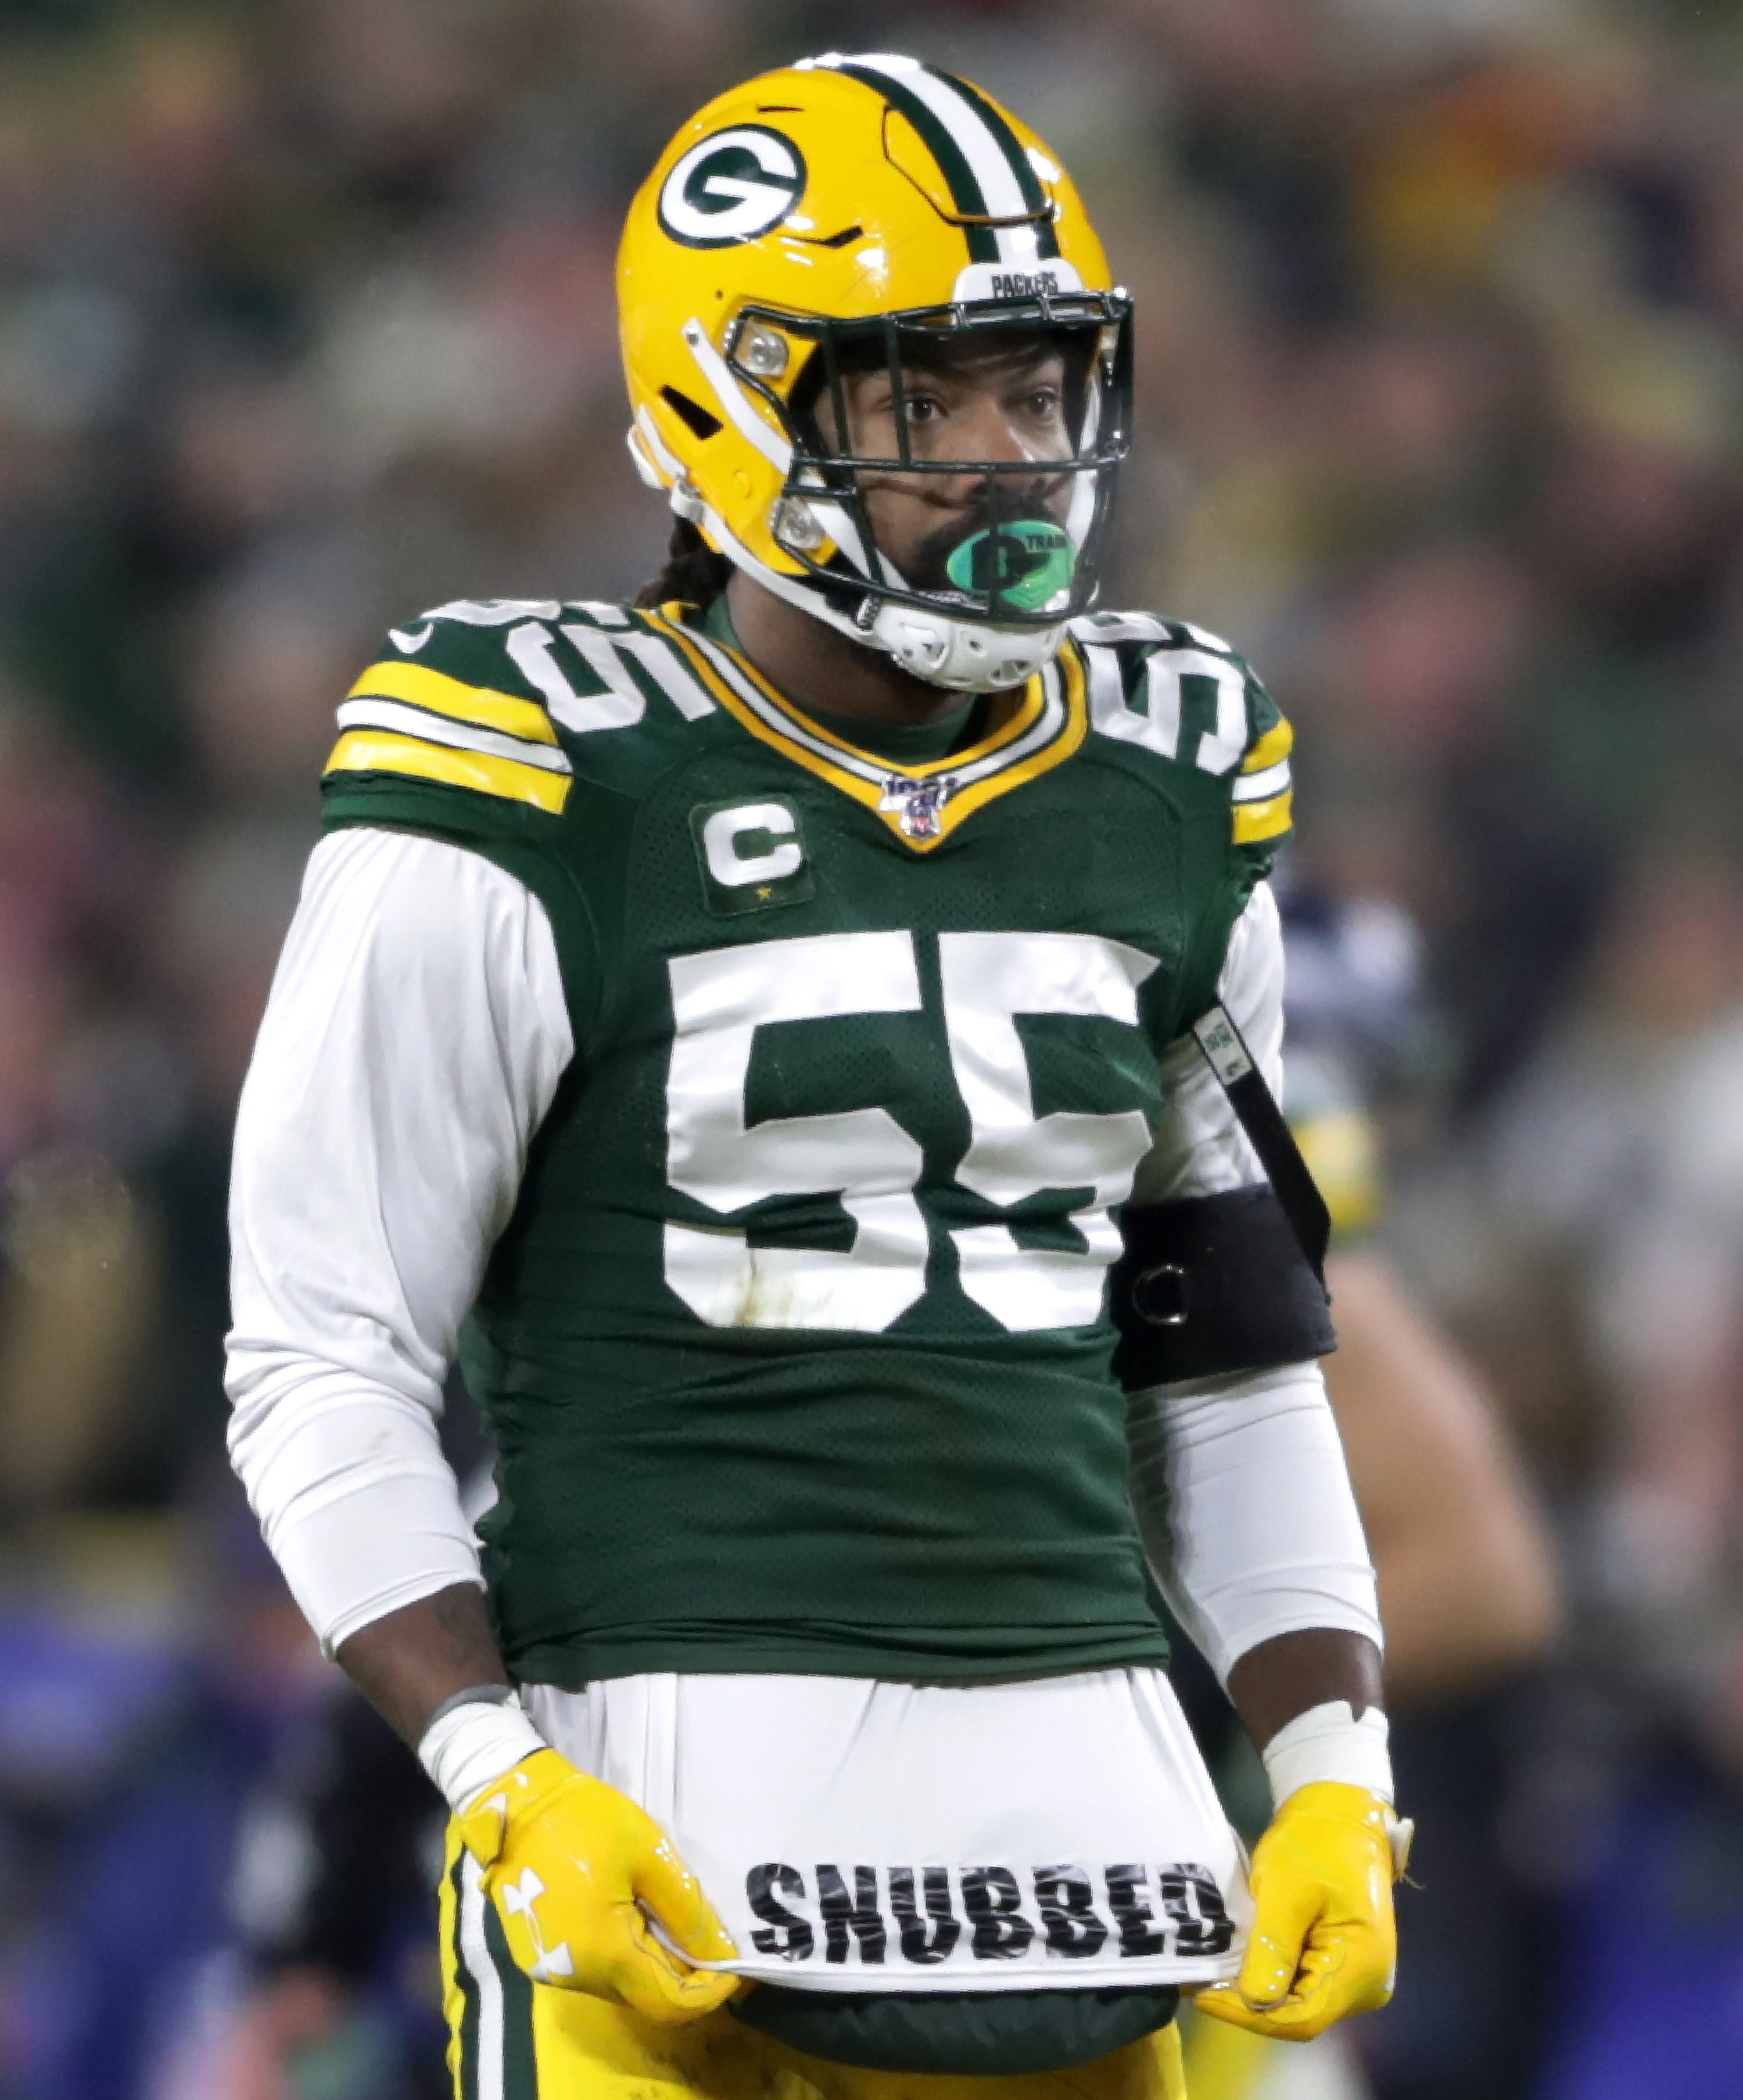 Packers rusher Za'Darius Smith flashes 'Snubbed' T-shirt after sack